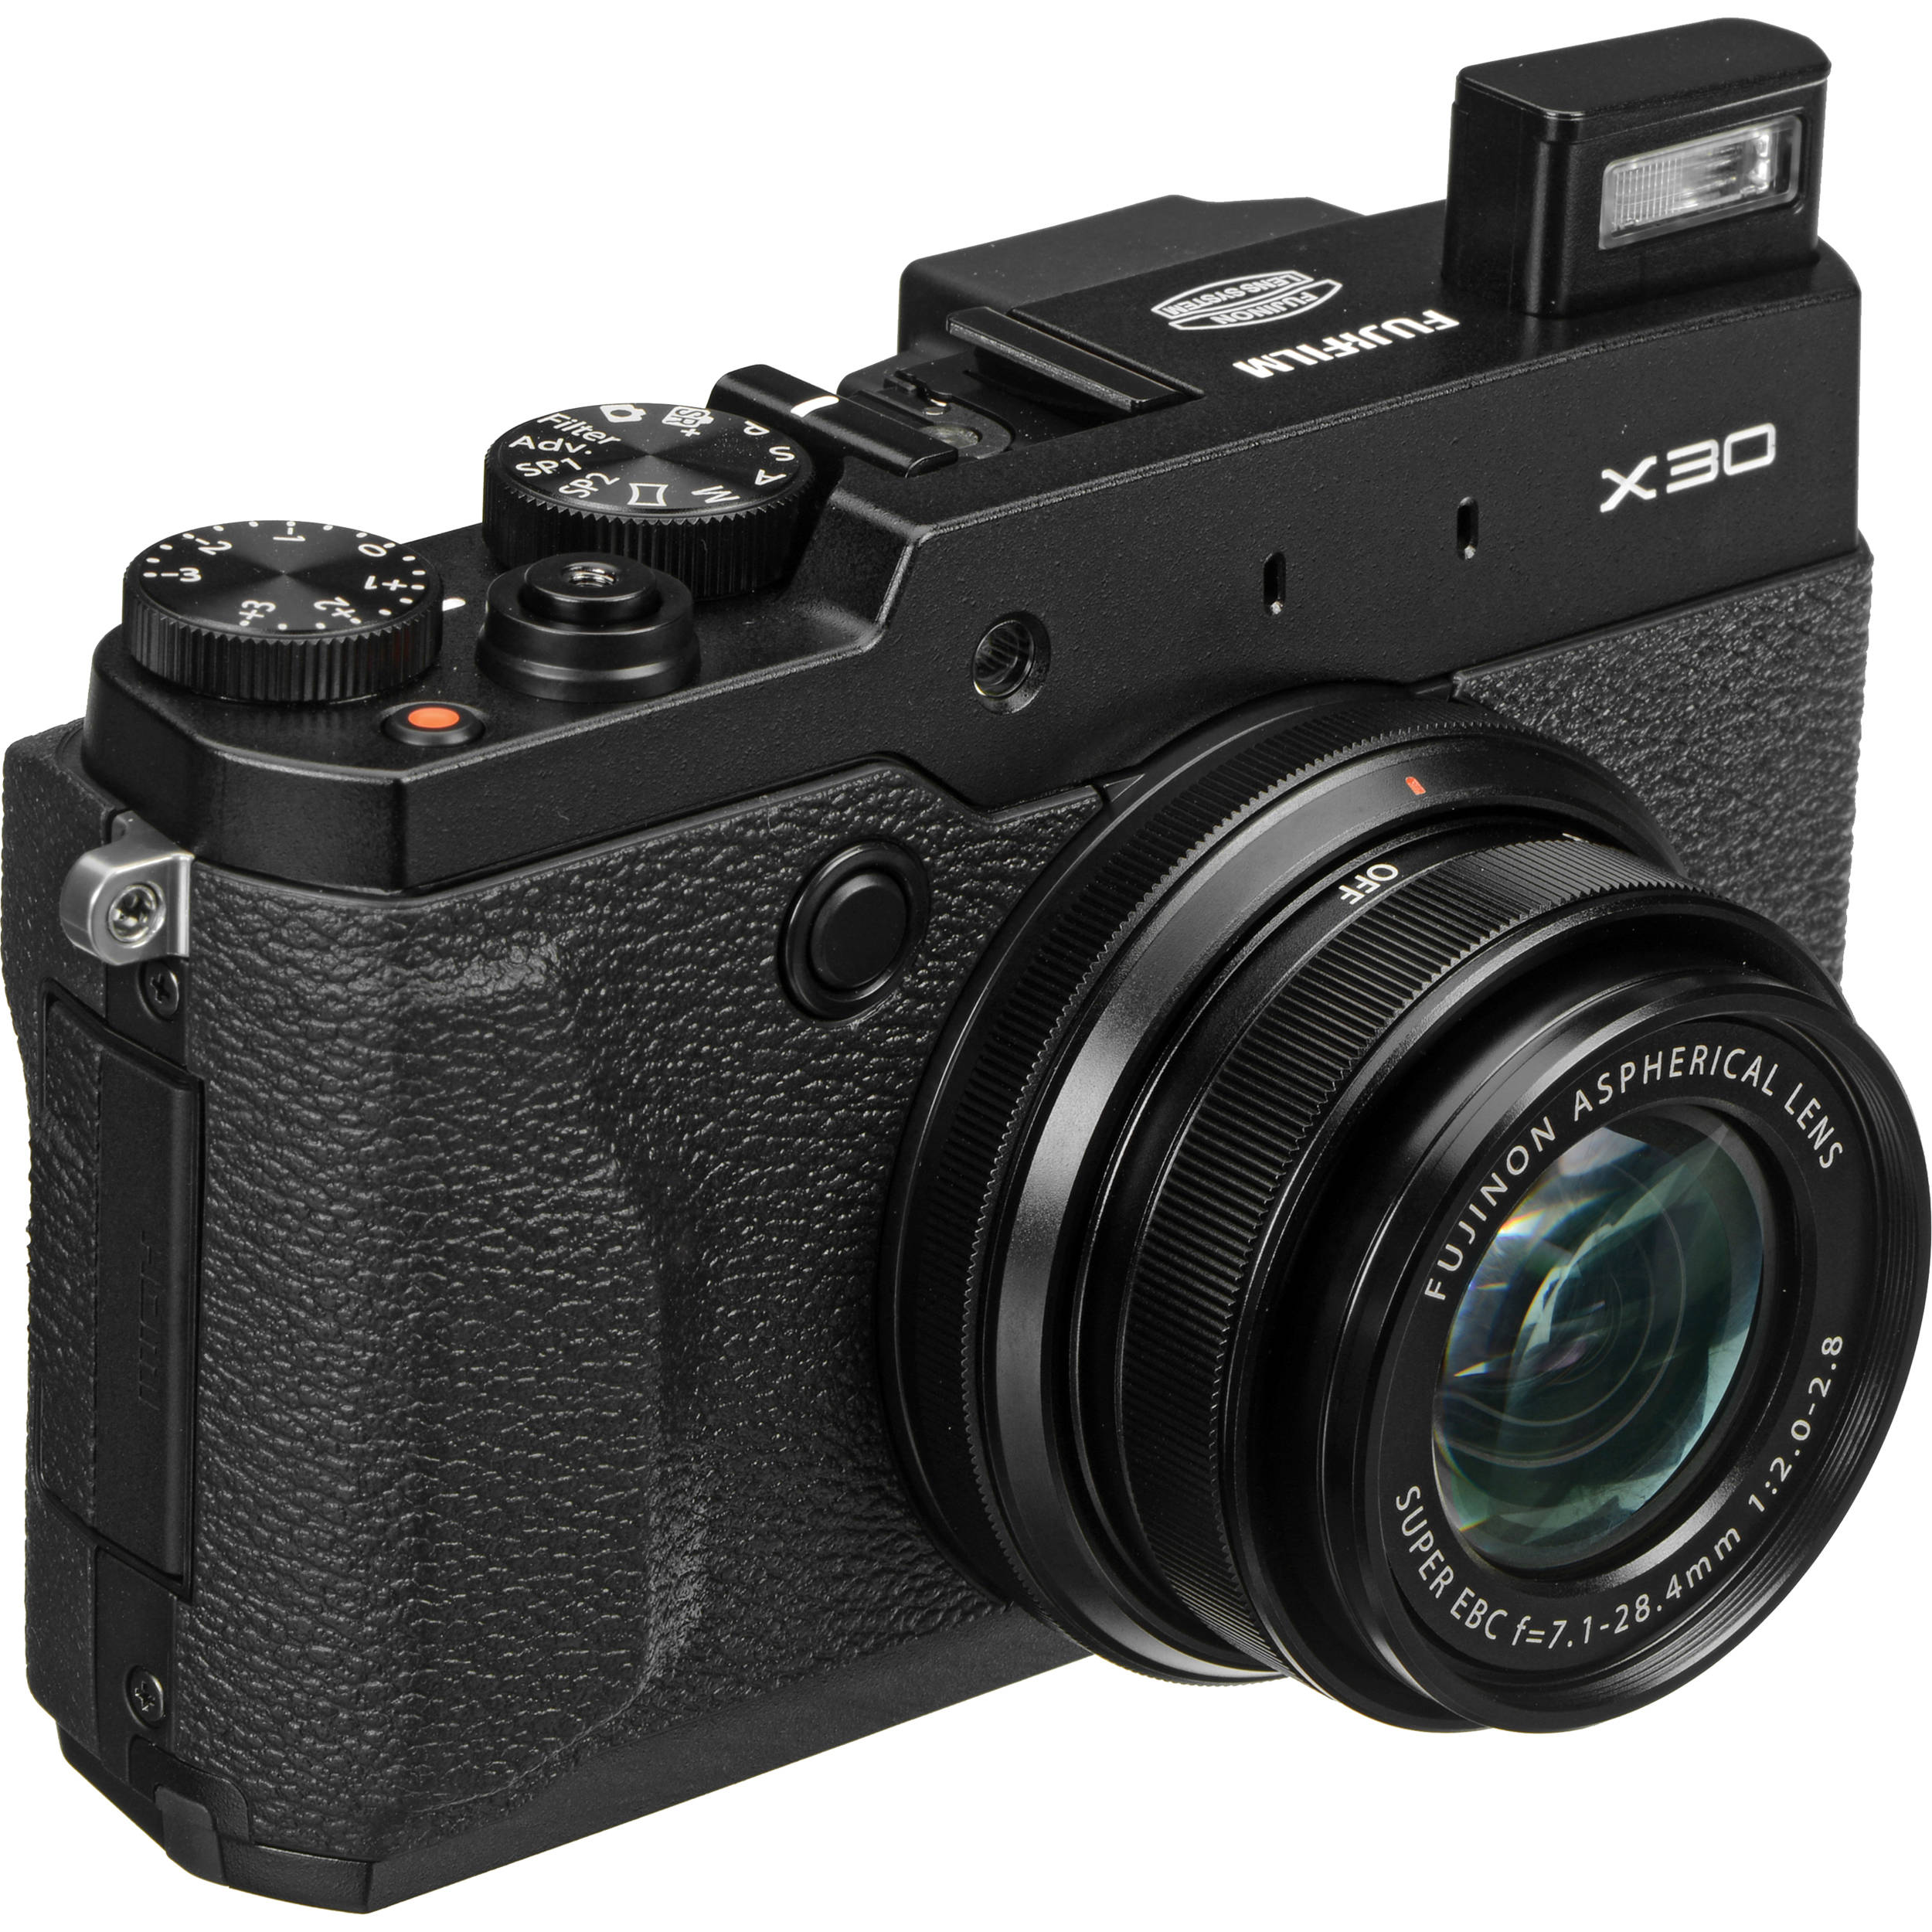 Fuji X Wedding Photography: Fuji X30 Digital Camera, Fujifilm X30 At B&H Photo